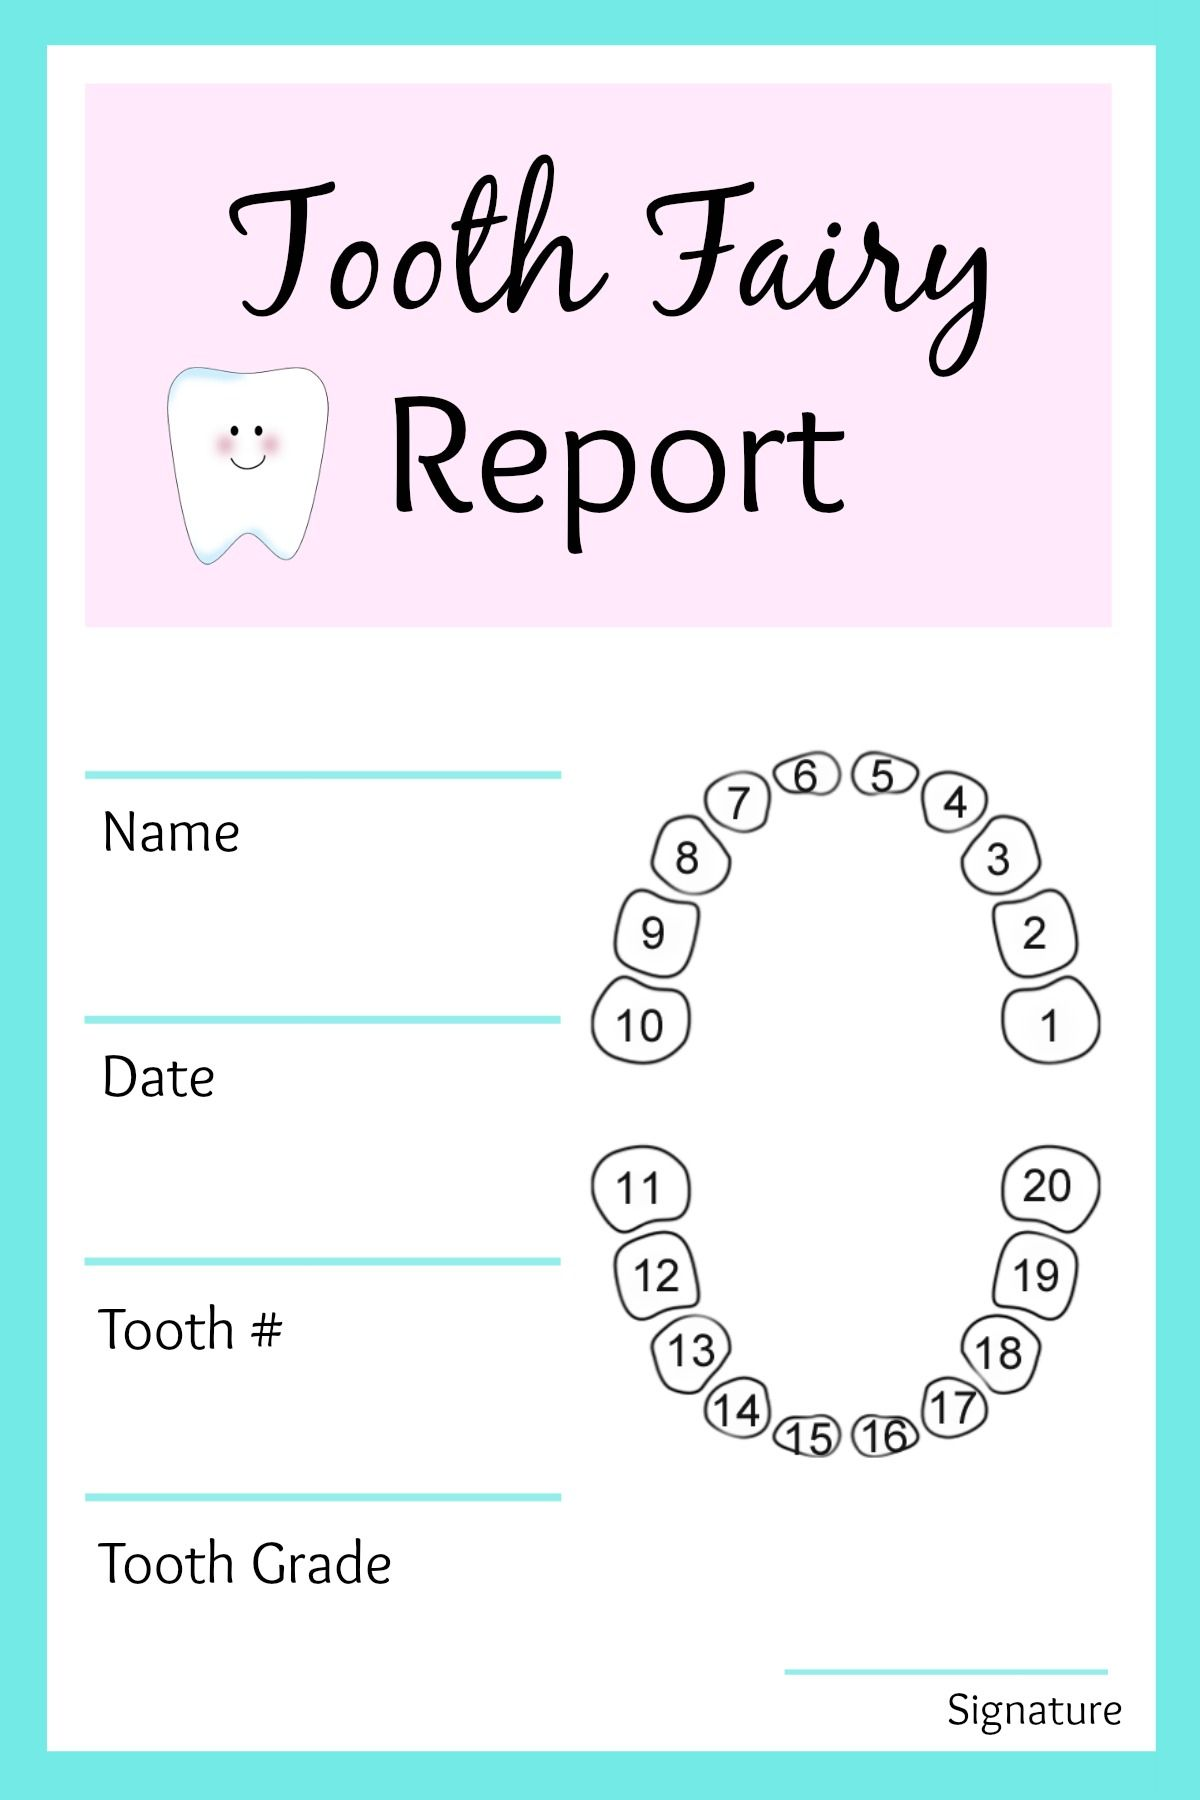 Tooth Fairy Report Jpg 1 200 1 800 Pixels Tooth Fairy Letter